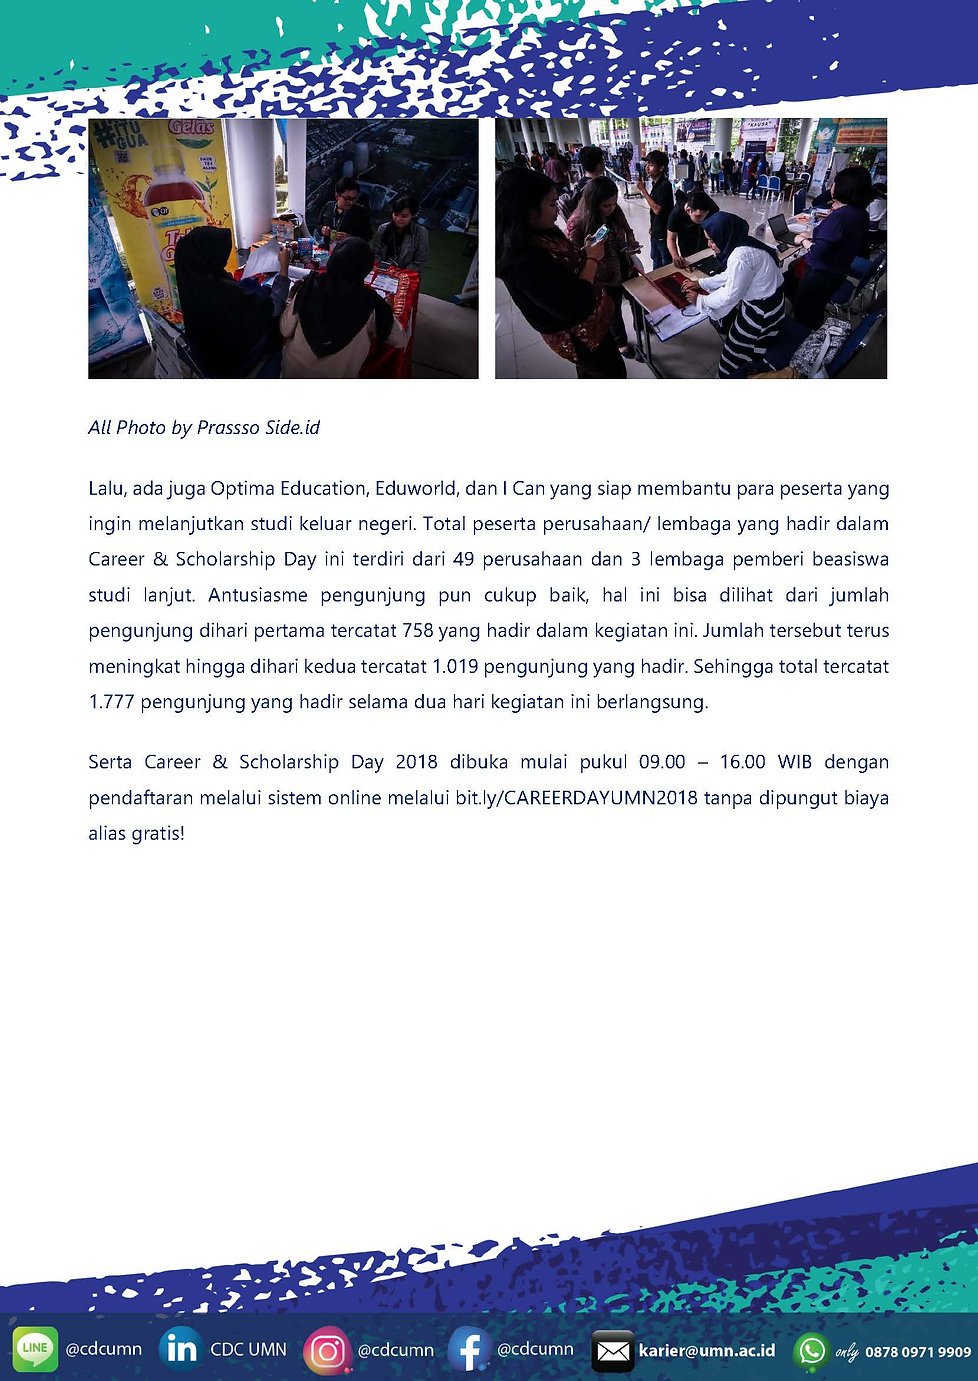 Proposal CD OKT 2019 utk EXTERNAL_Page_1